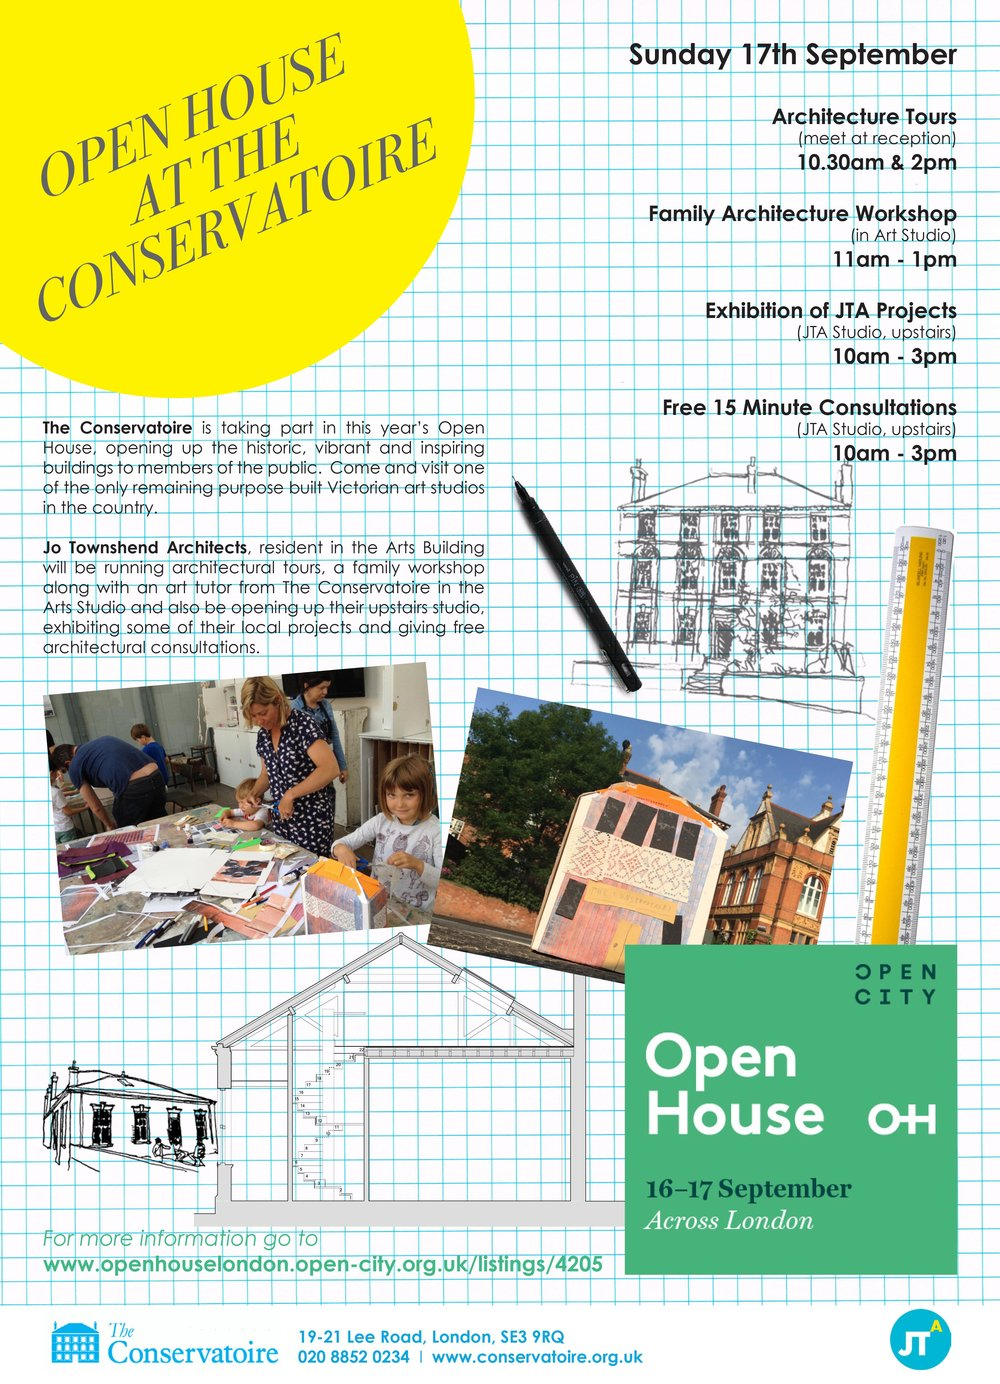 Come and join us for a day of architecture related fun at The Conservatoire, Blackheath on Sunday 17th September!